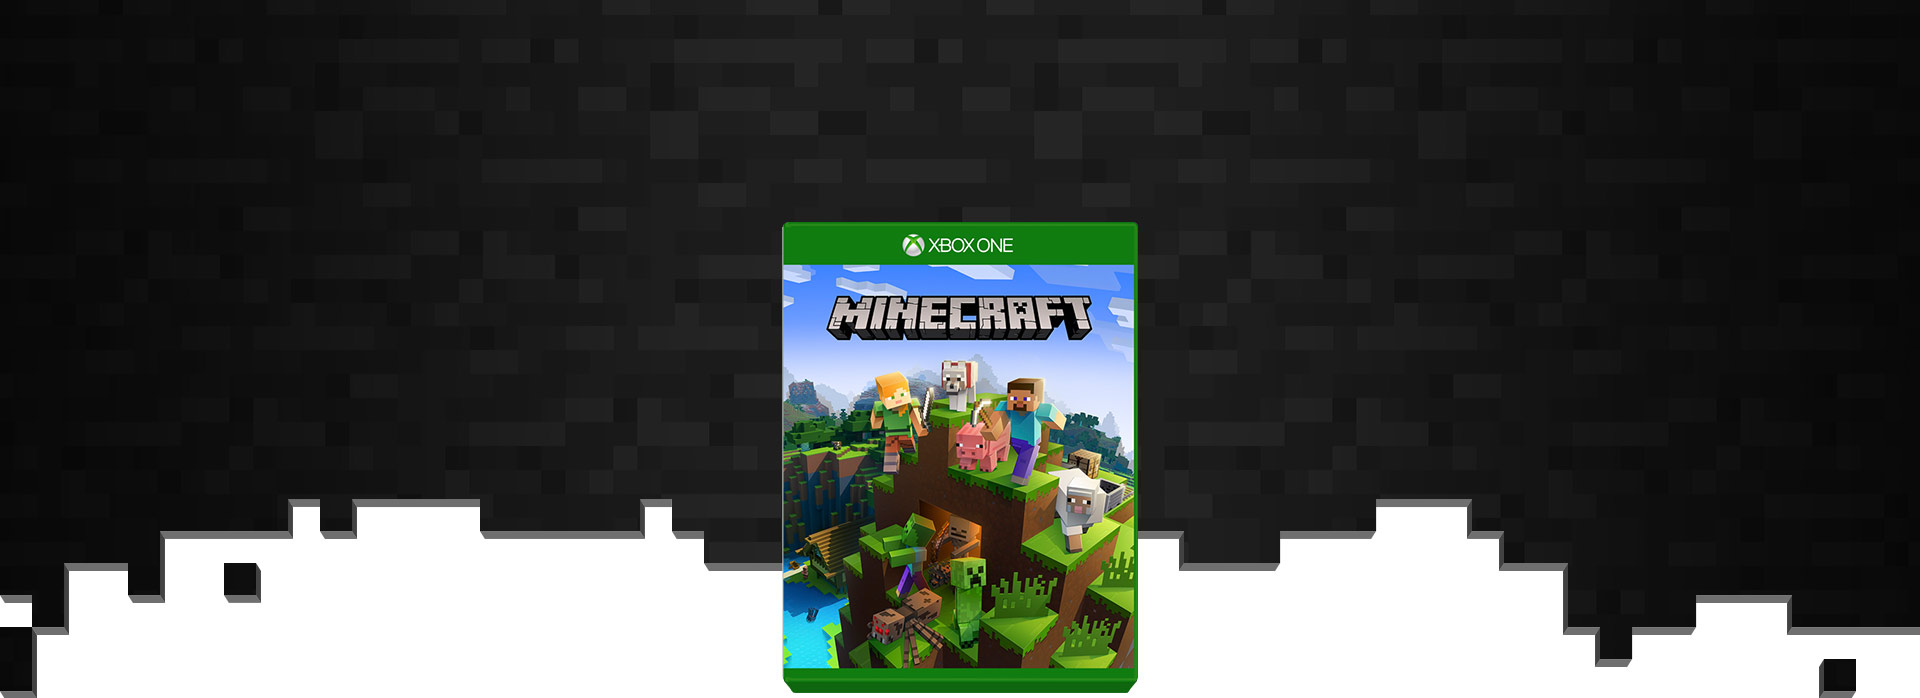 How to get a compass on minecraft xbox one